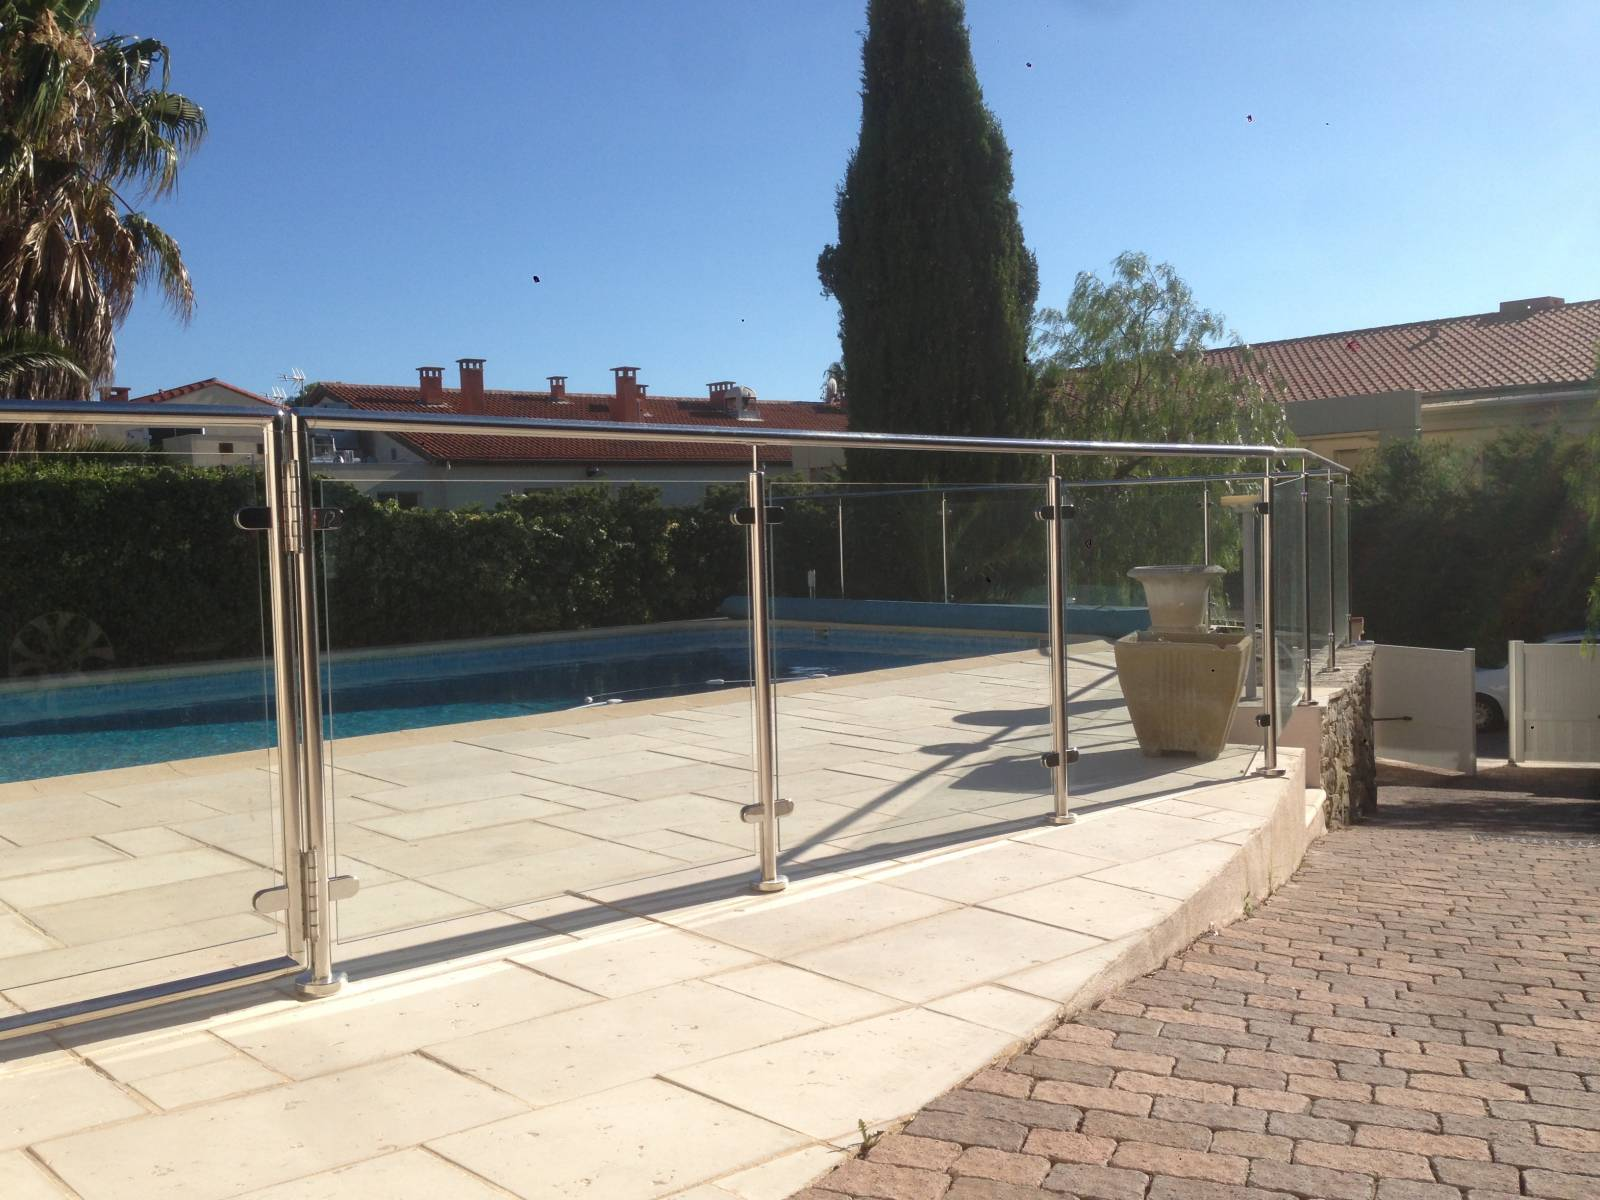 Conception et pose de protection de piscine en inox et verre  a Sanary